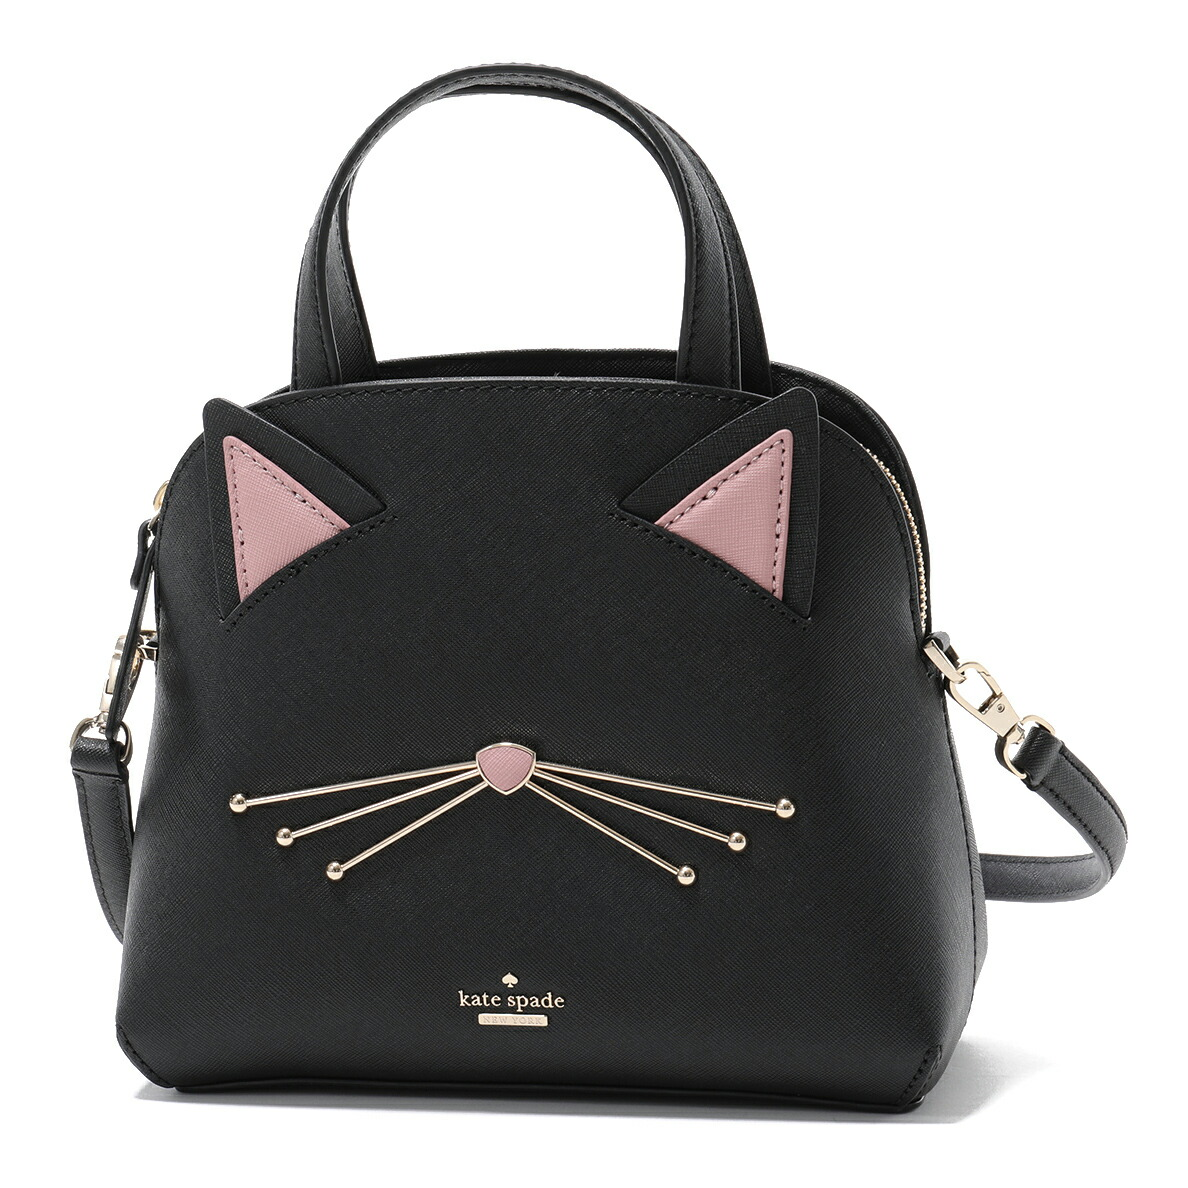 3d4606d3af56 楽天市場】Kate spade ケイトスペード CATS MEOW CAT SMALL LOTTIE ...